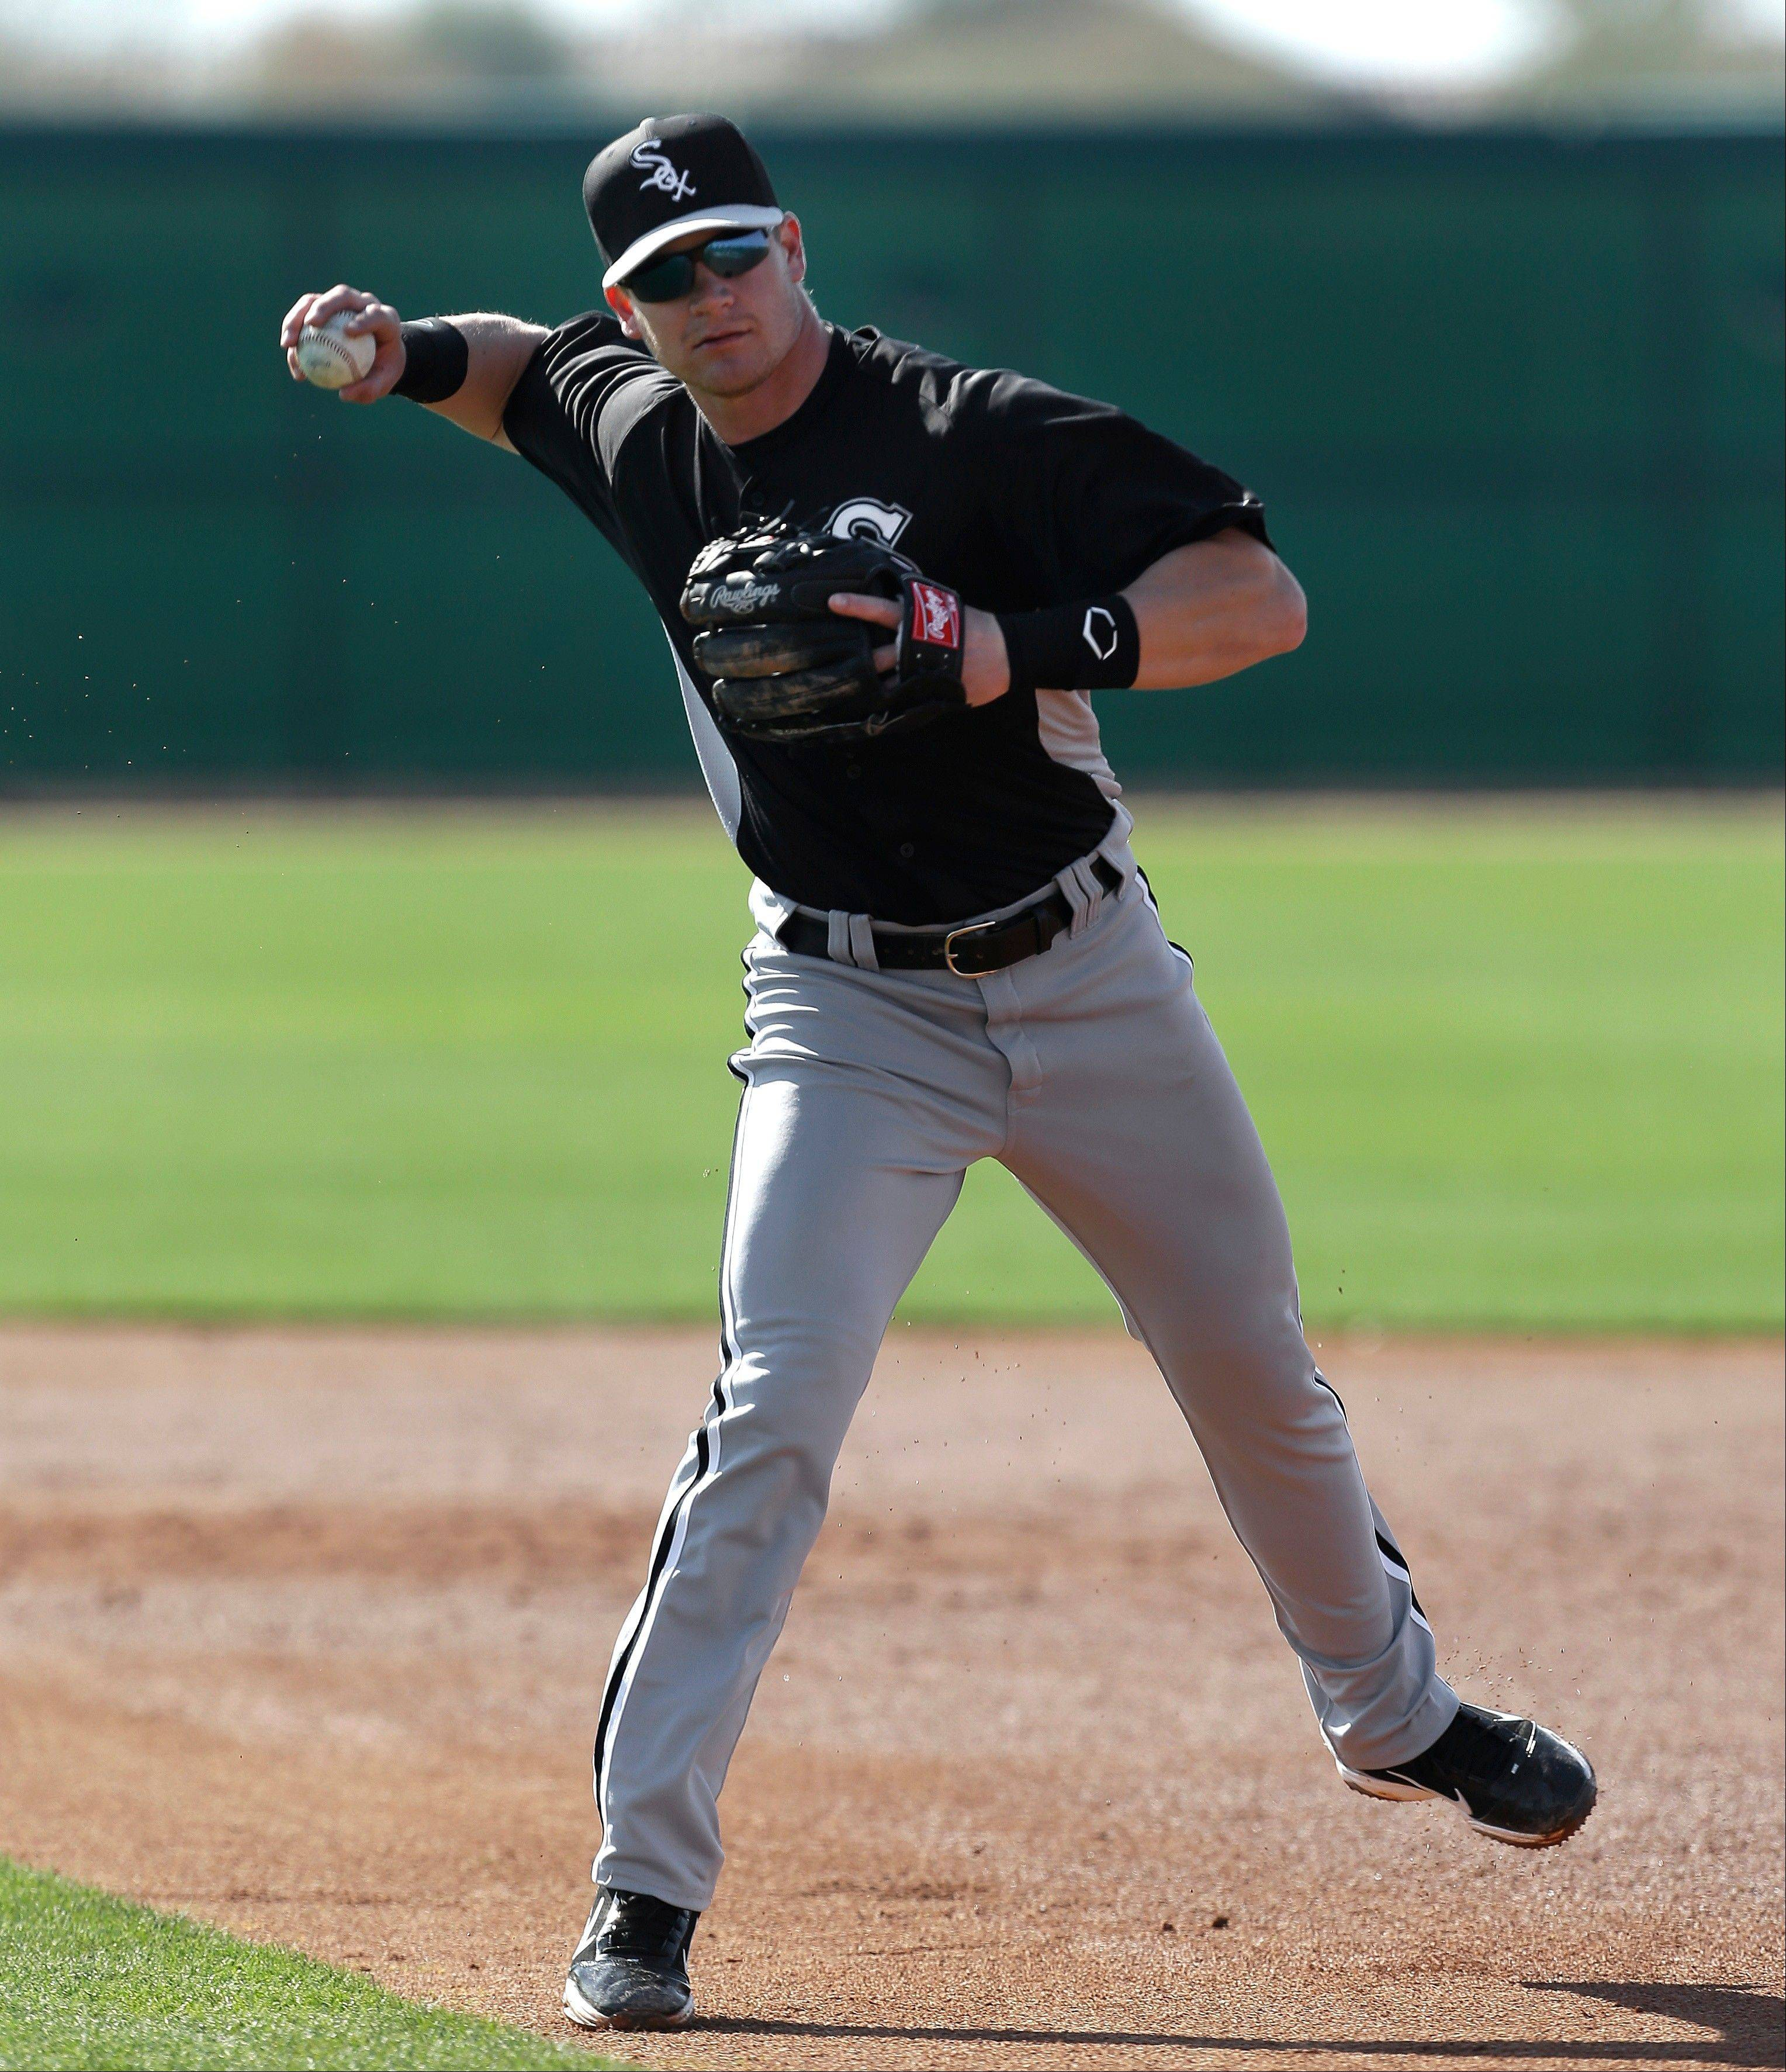 Chicago White Sox second baseman Gordon Beckham throws during spring training baseball in Phoenix, Thursday, Feb. 21, 2013.